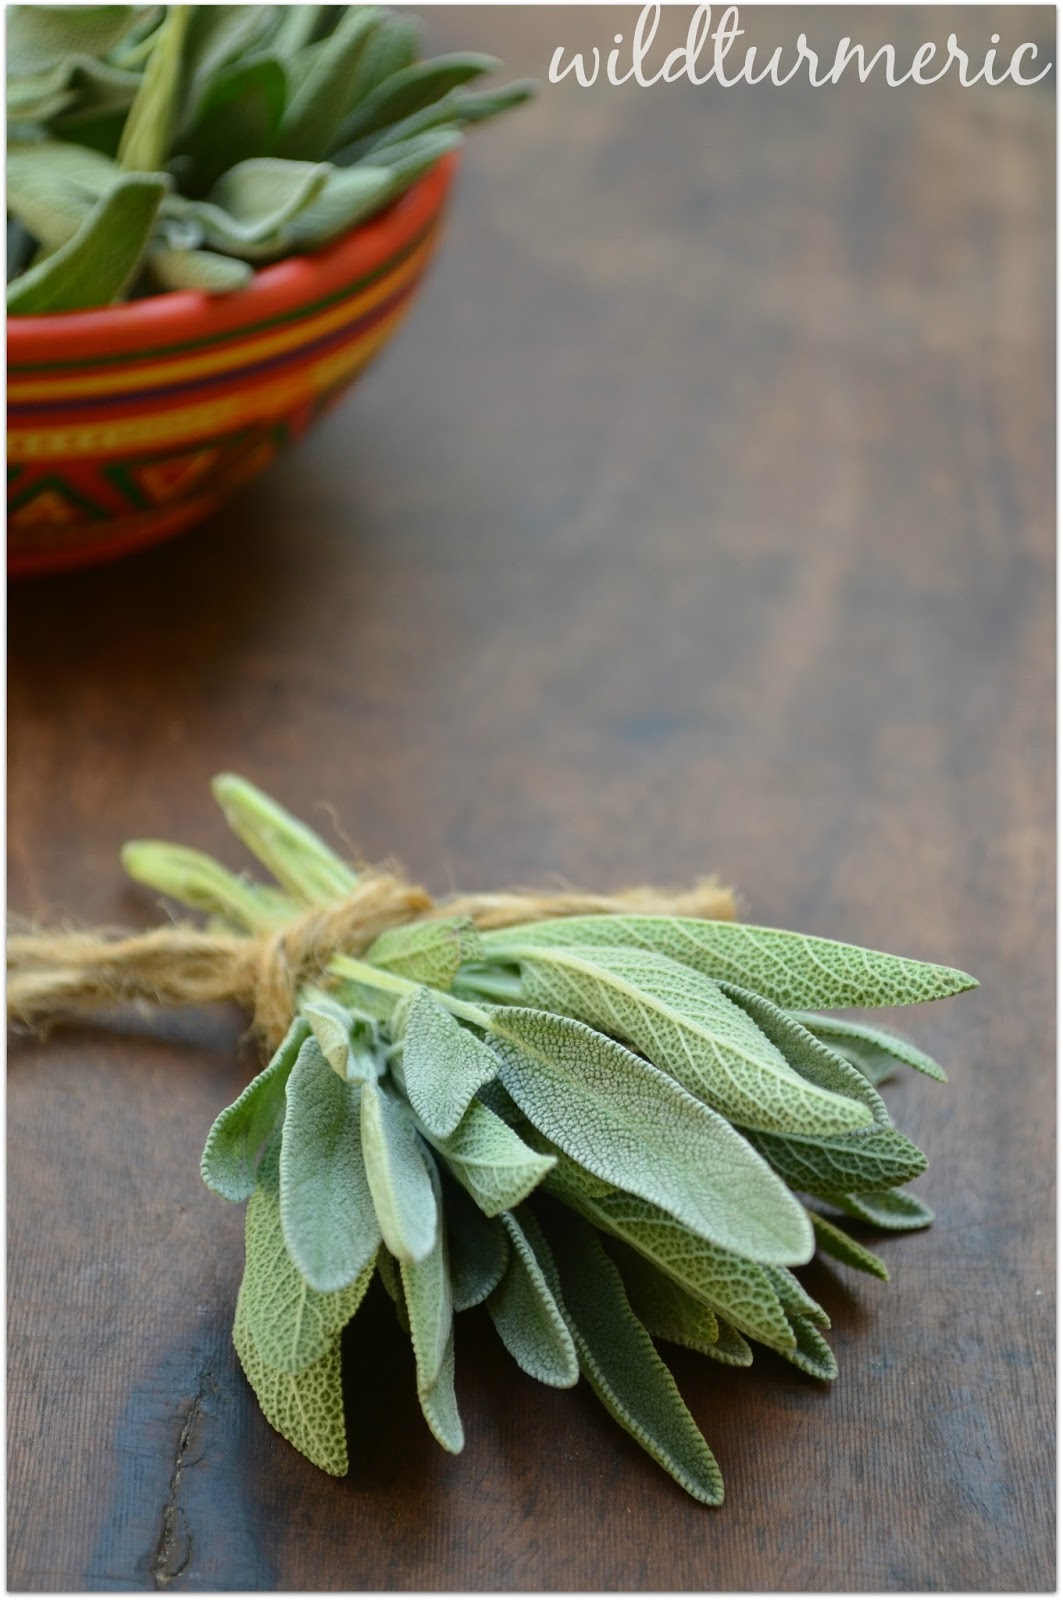 10 Top Medicinal Uses & Side Effects Of Sage (Salvia Officinalis) | Salvia